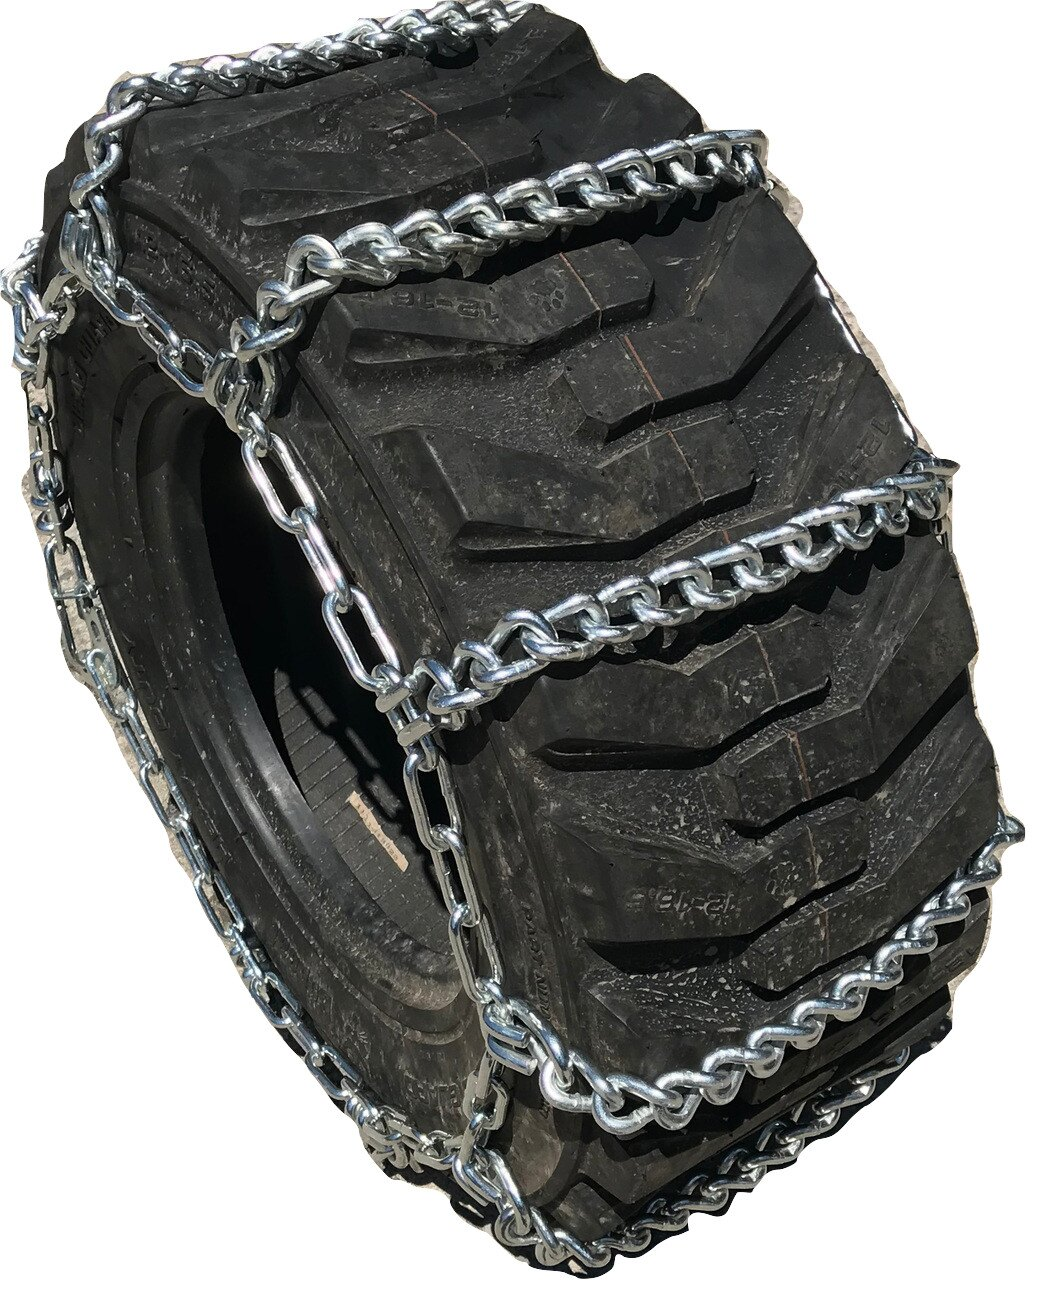 TireChain com Kubota STW37 9 5-24 Tractor Tire Chains